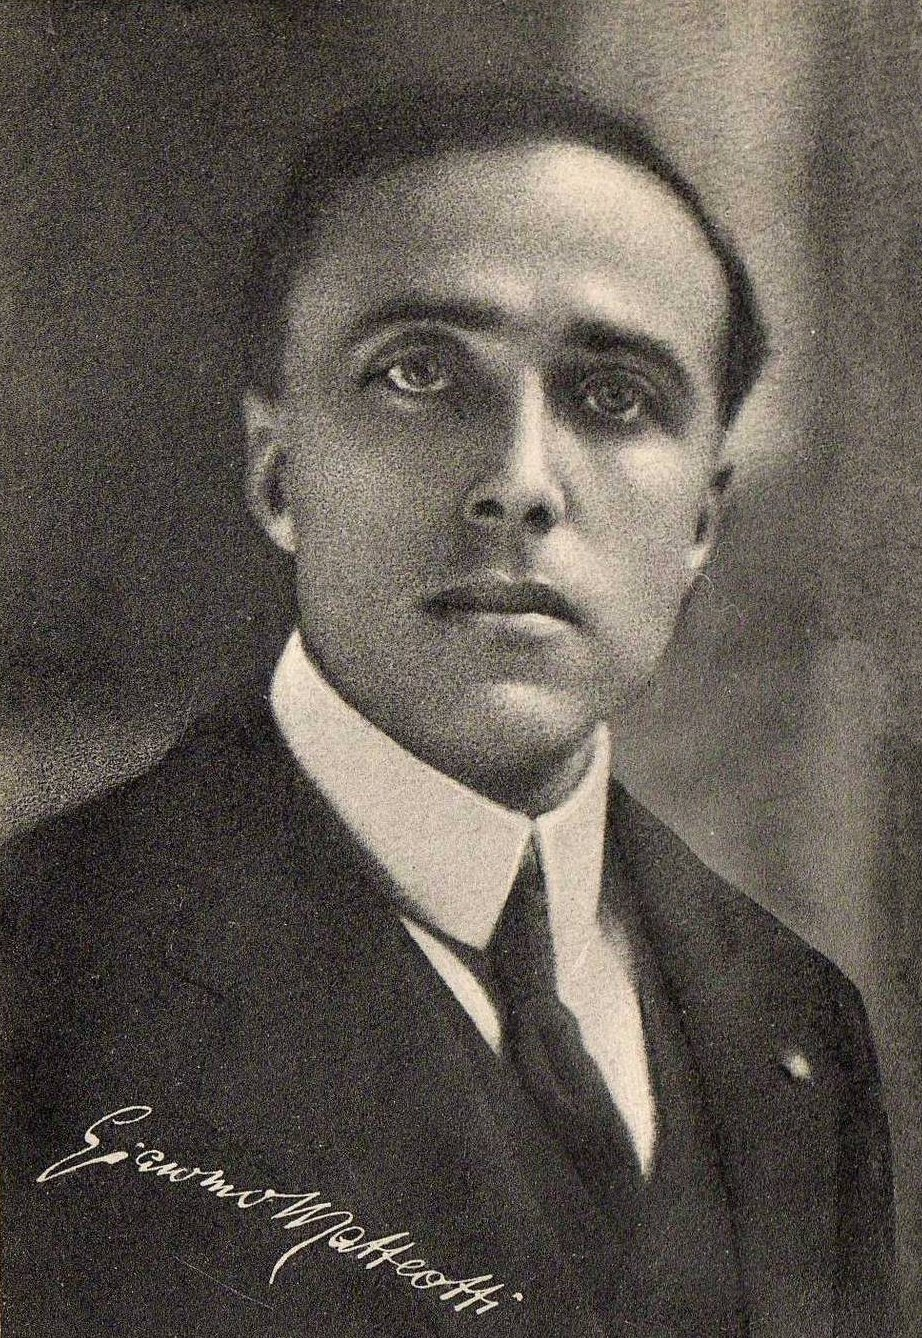 Socialist leader Giacomo Matteotti headshot in suit and tie